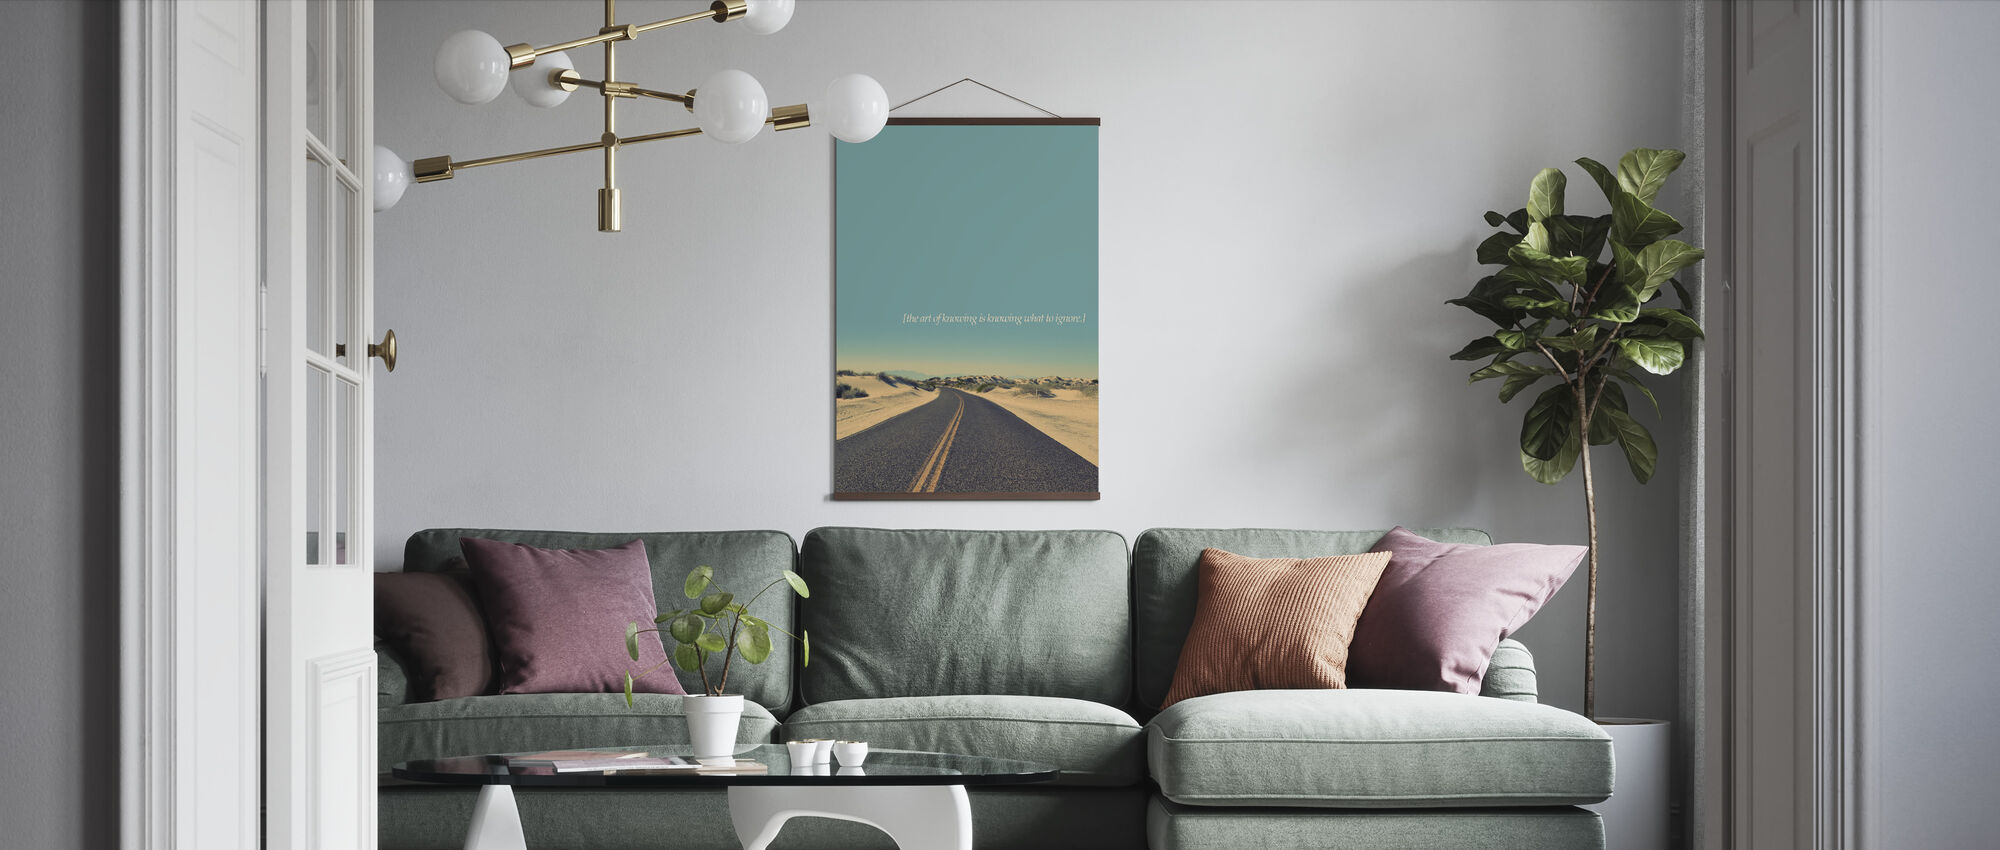 The Art of Knowing - Poster - Living Room